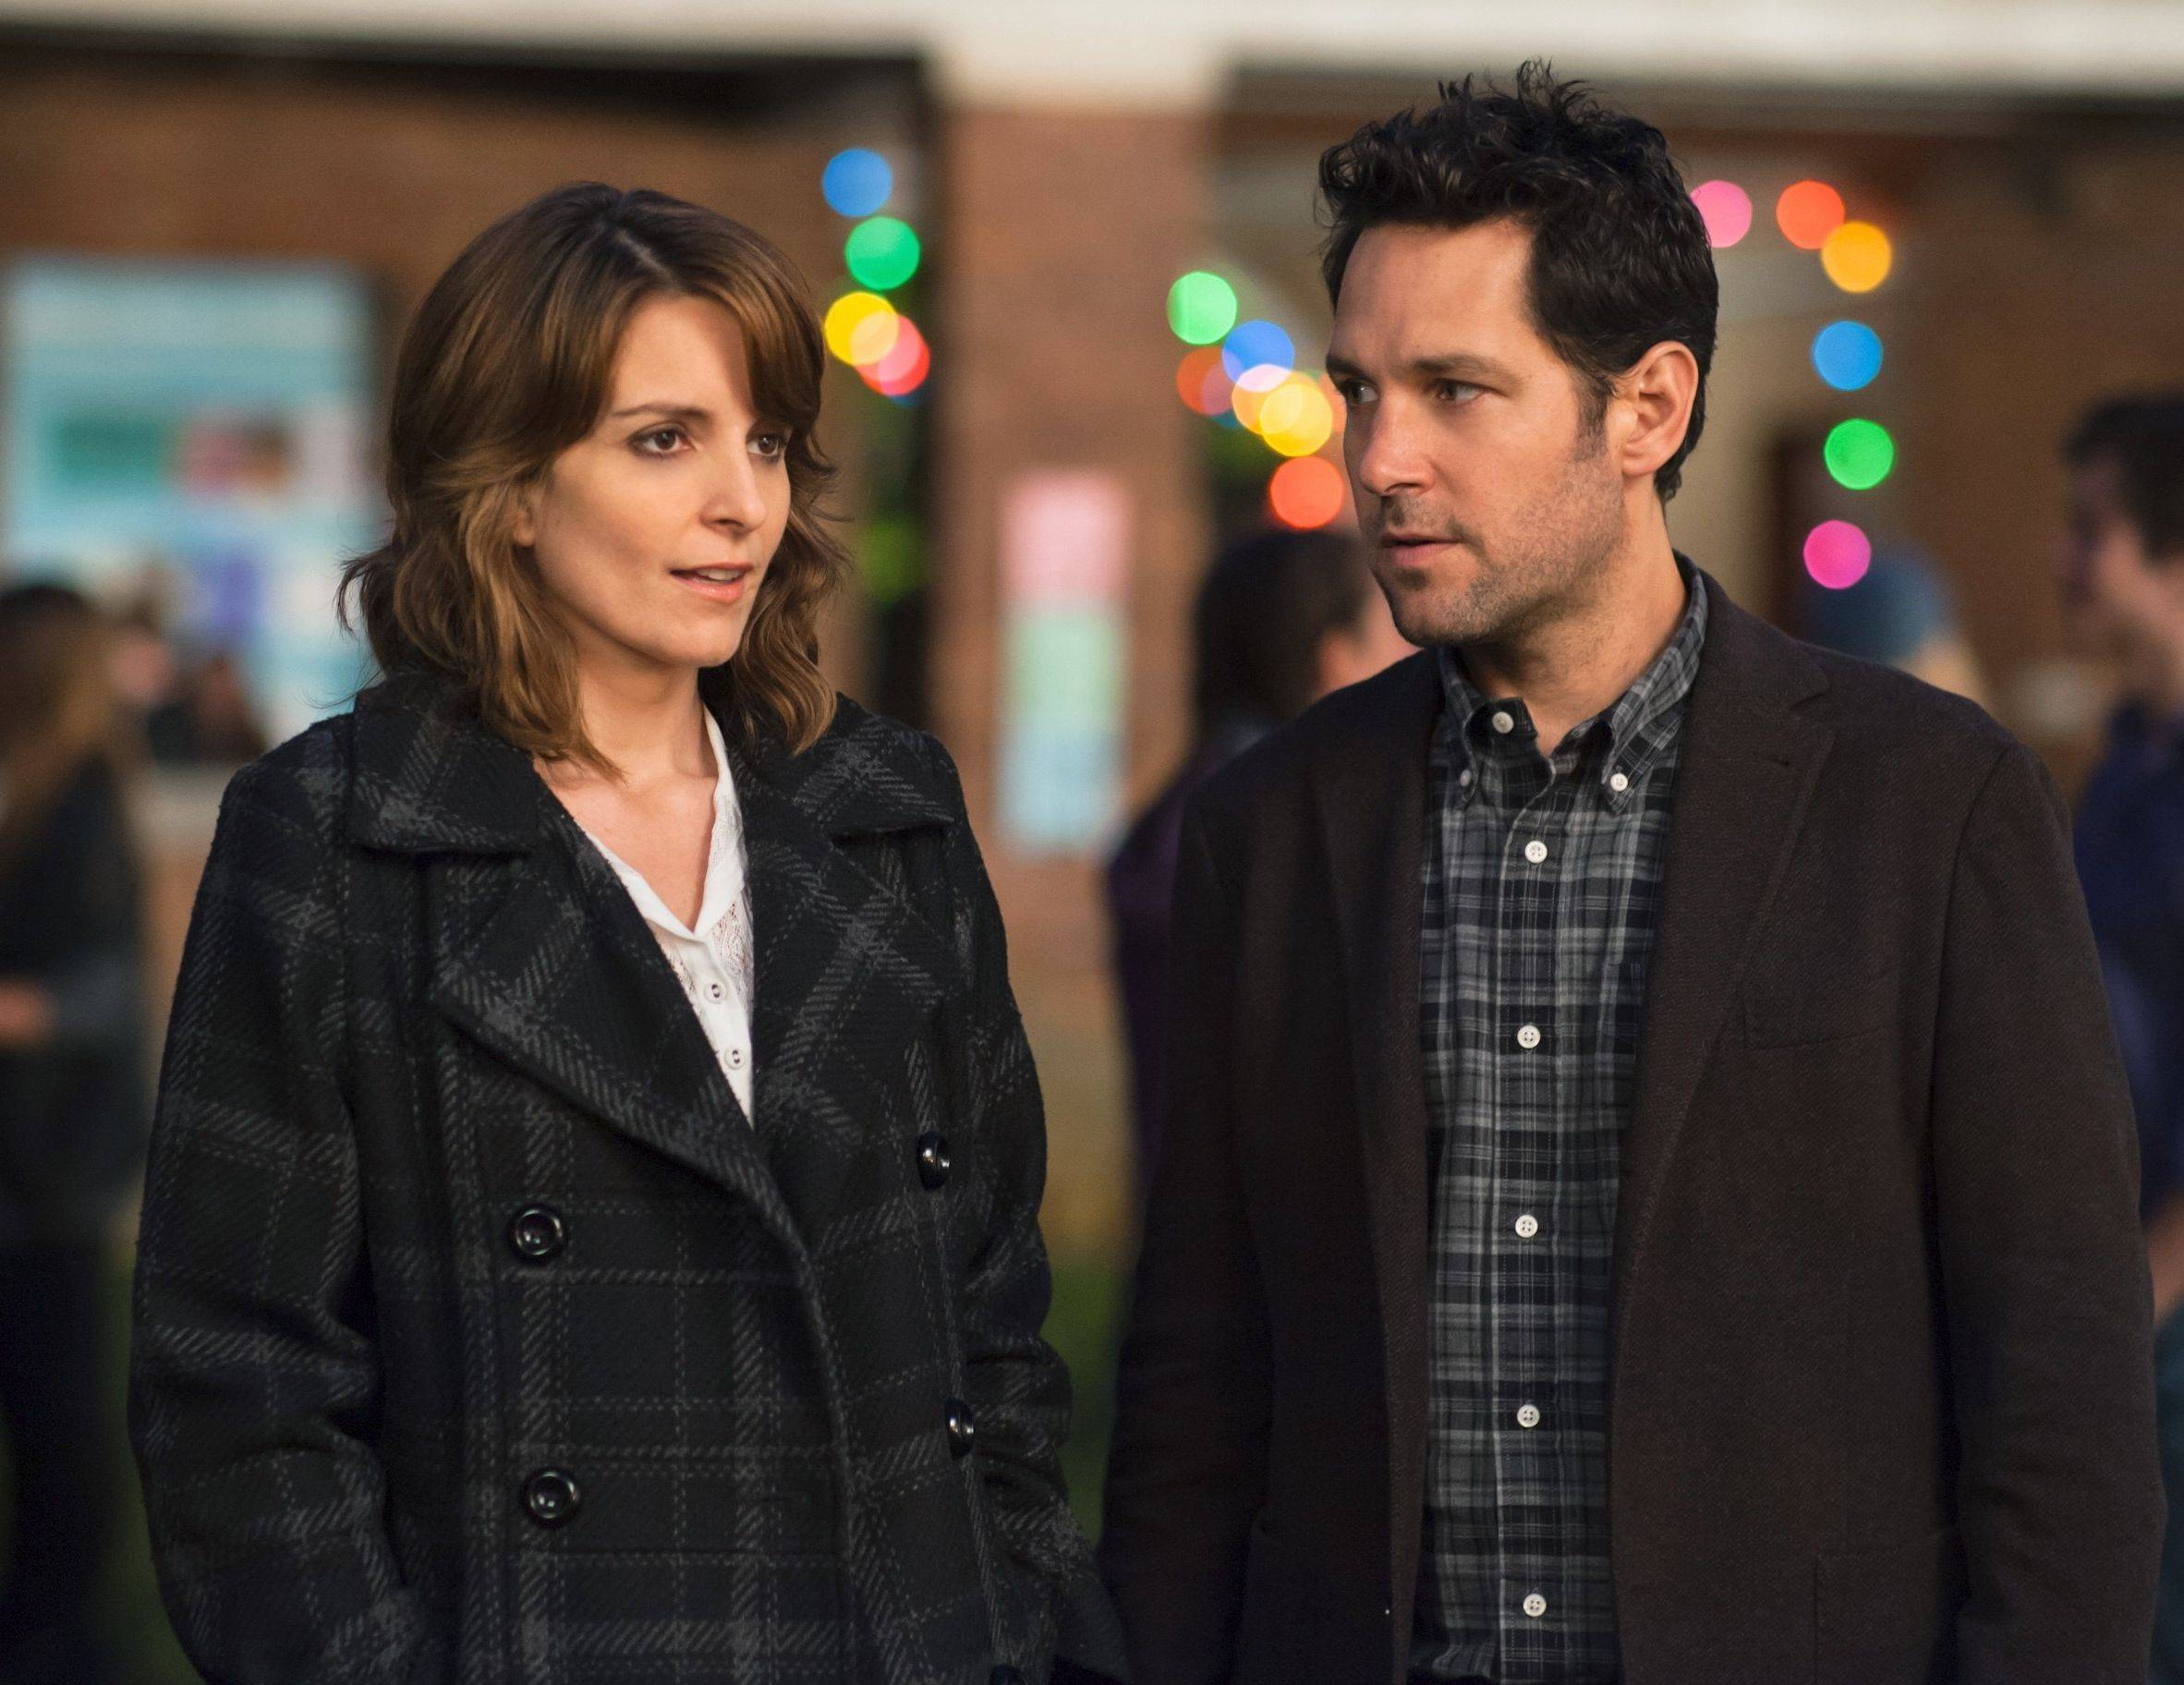 Princeton University admissions officer Portia (Tina Fey) falls for a principal (Paul Rudd) trying to get a student into her school in �Admission.�